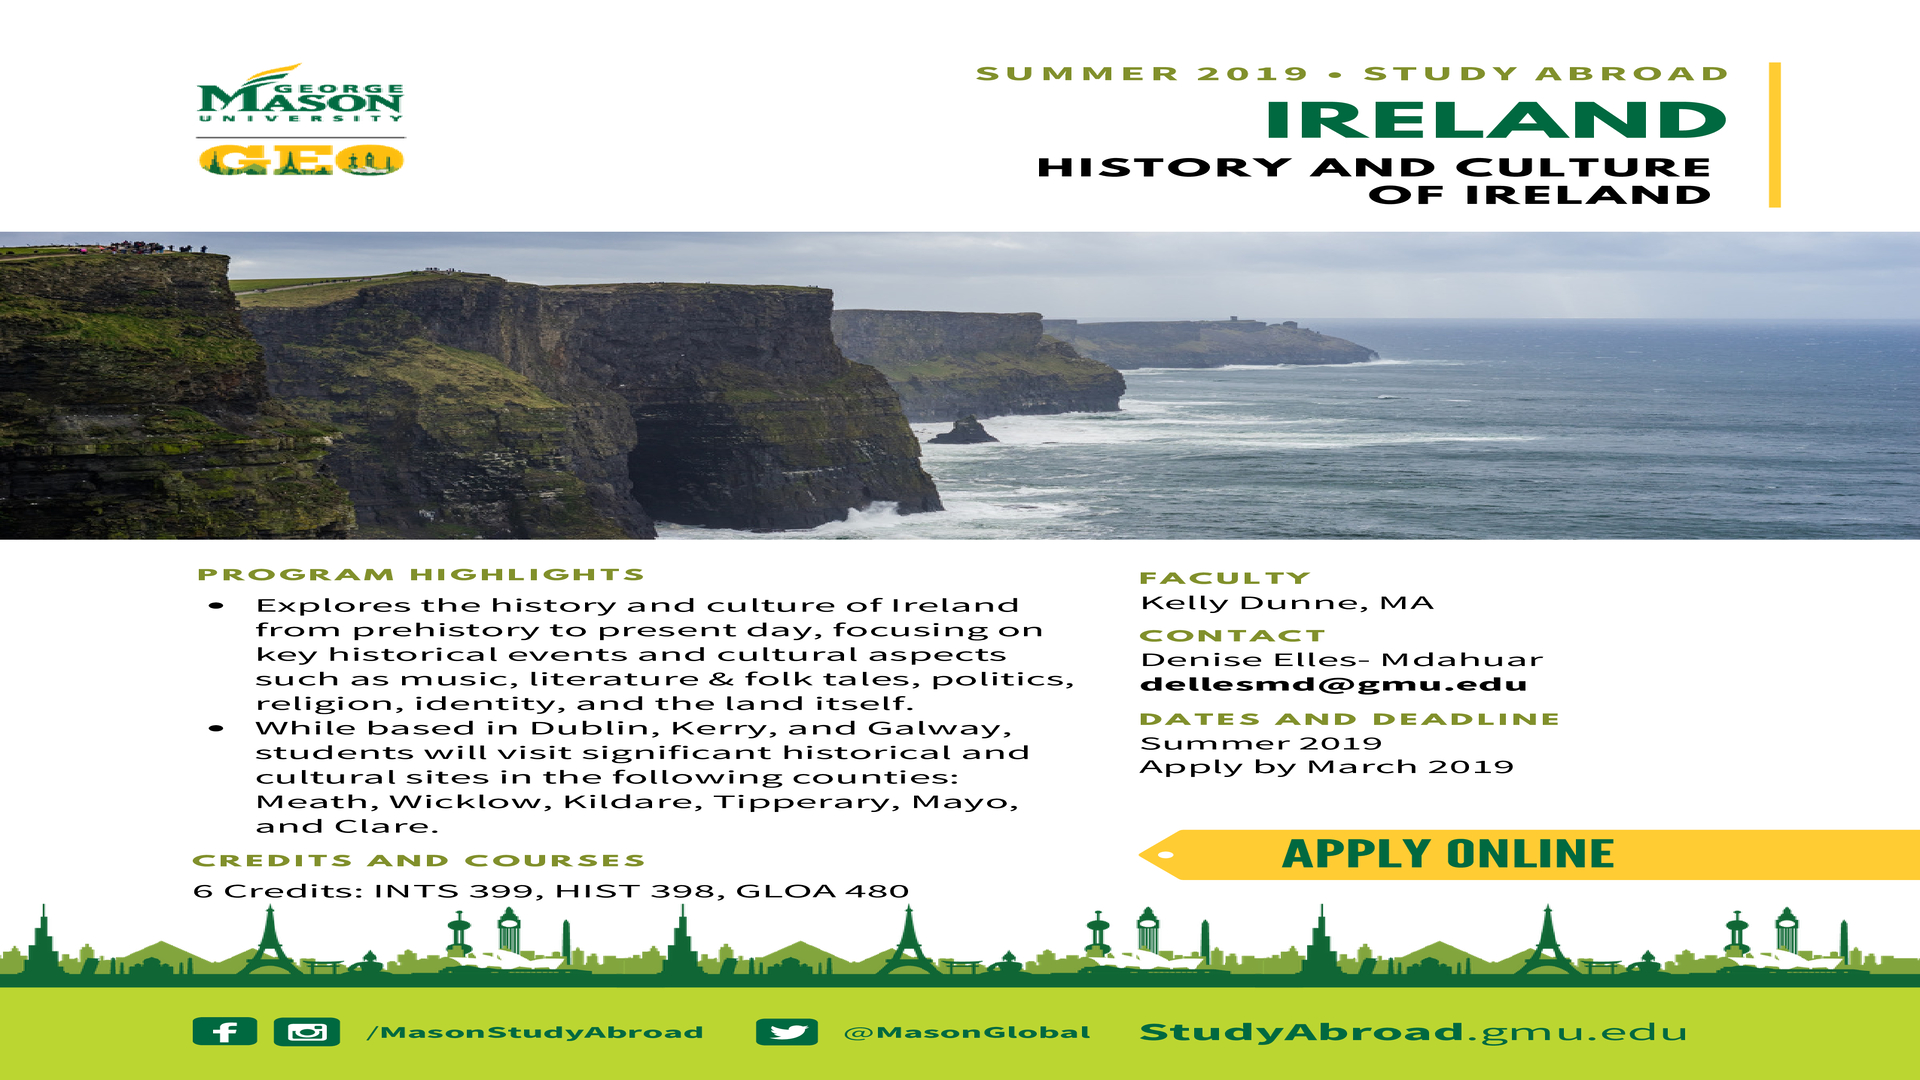 Information regarding History and Culture of Ireland is as follows Start date (when you would like your content to be posted) is December 18 2018 and End Date  (when you would like your content to be removed from the screens) is April 01 2019 and File is Browse and Email is dellesmd@gmu.edu and Name is Denise Elles-Mdahuar and Group Name is Global Education Office and Name of Ad/Event is History and Culture of Ireland and File Name is Faculty-led_-Denise_Ireland_comp.jpg and Affiliation is Mason Department and Panel for your ad to be displayed is Side and